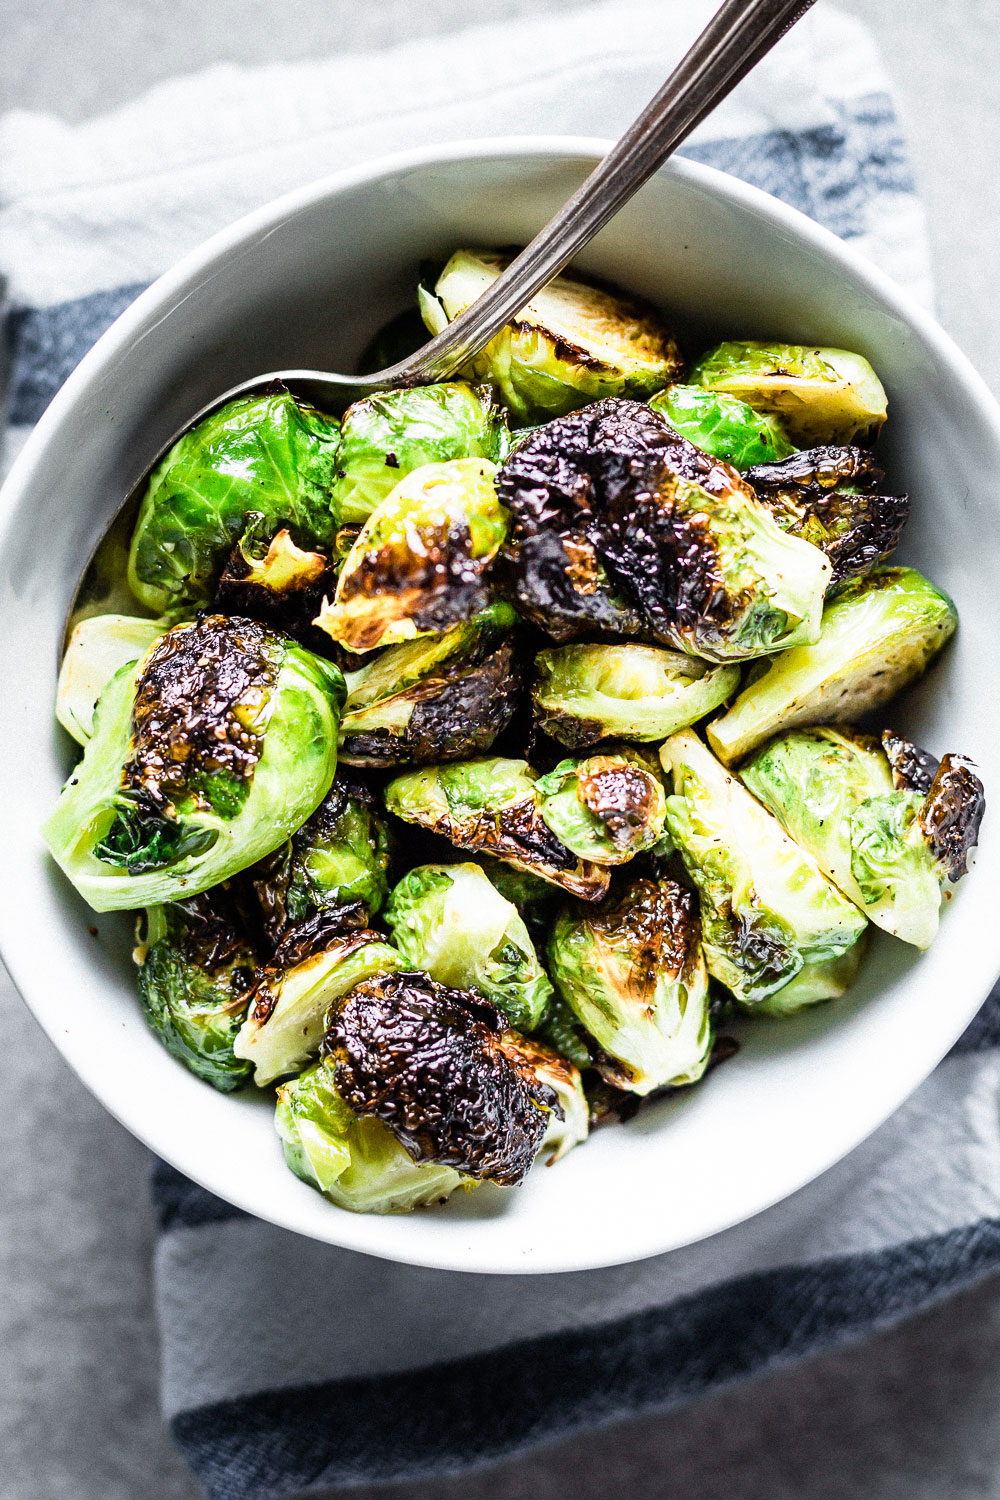 crispy brussels sprouts in bowl with serving spoon